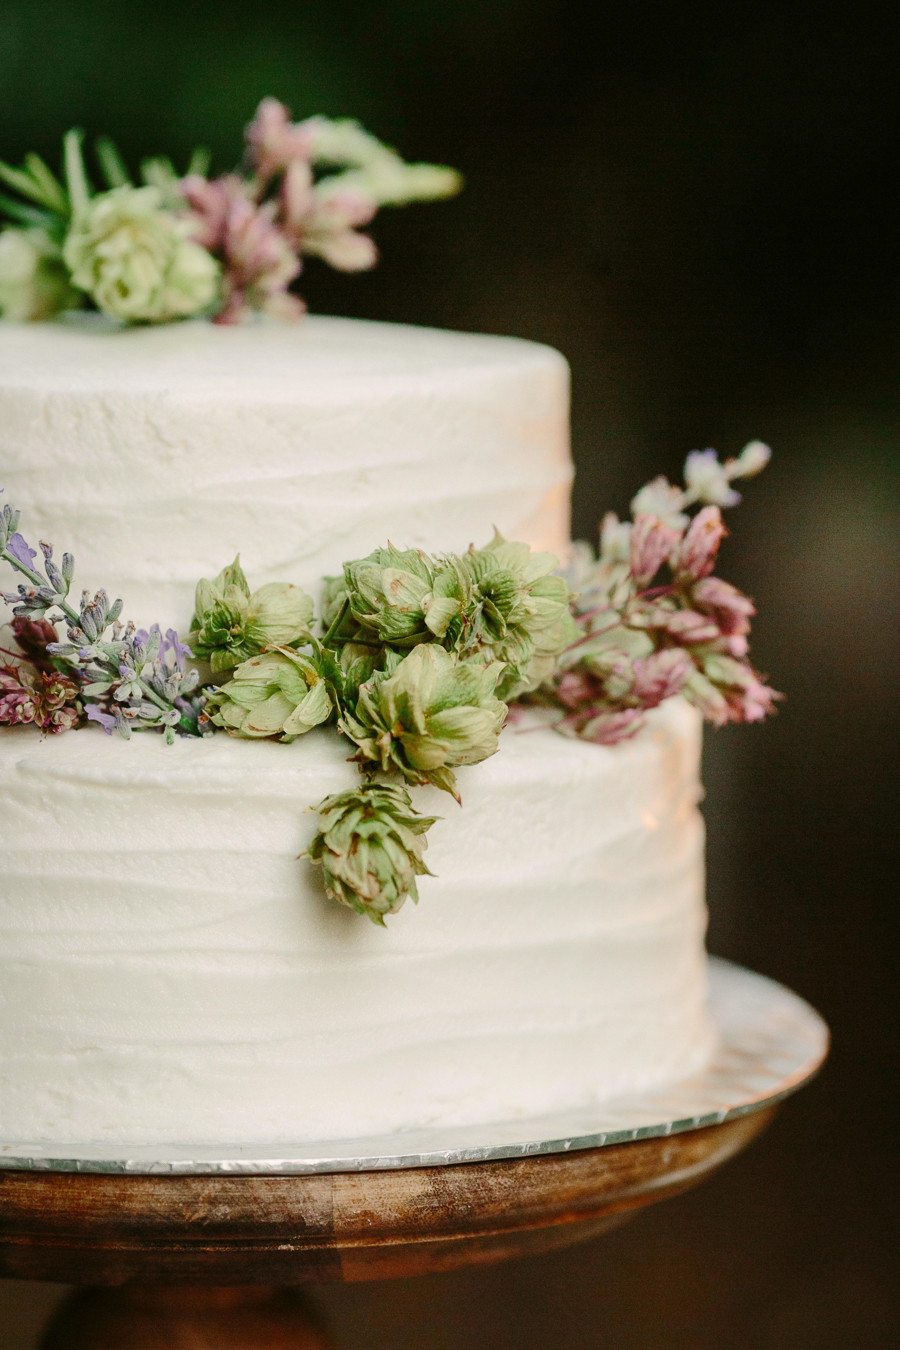 Bespoke Cakery wedding cakes in Grand Junction & Palisade, Colorado / photo: Cat Mayer Studio